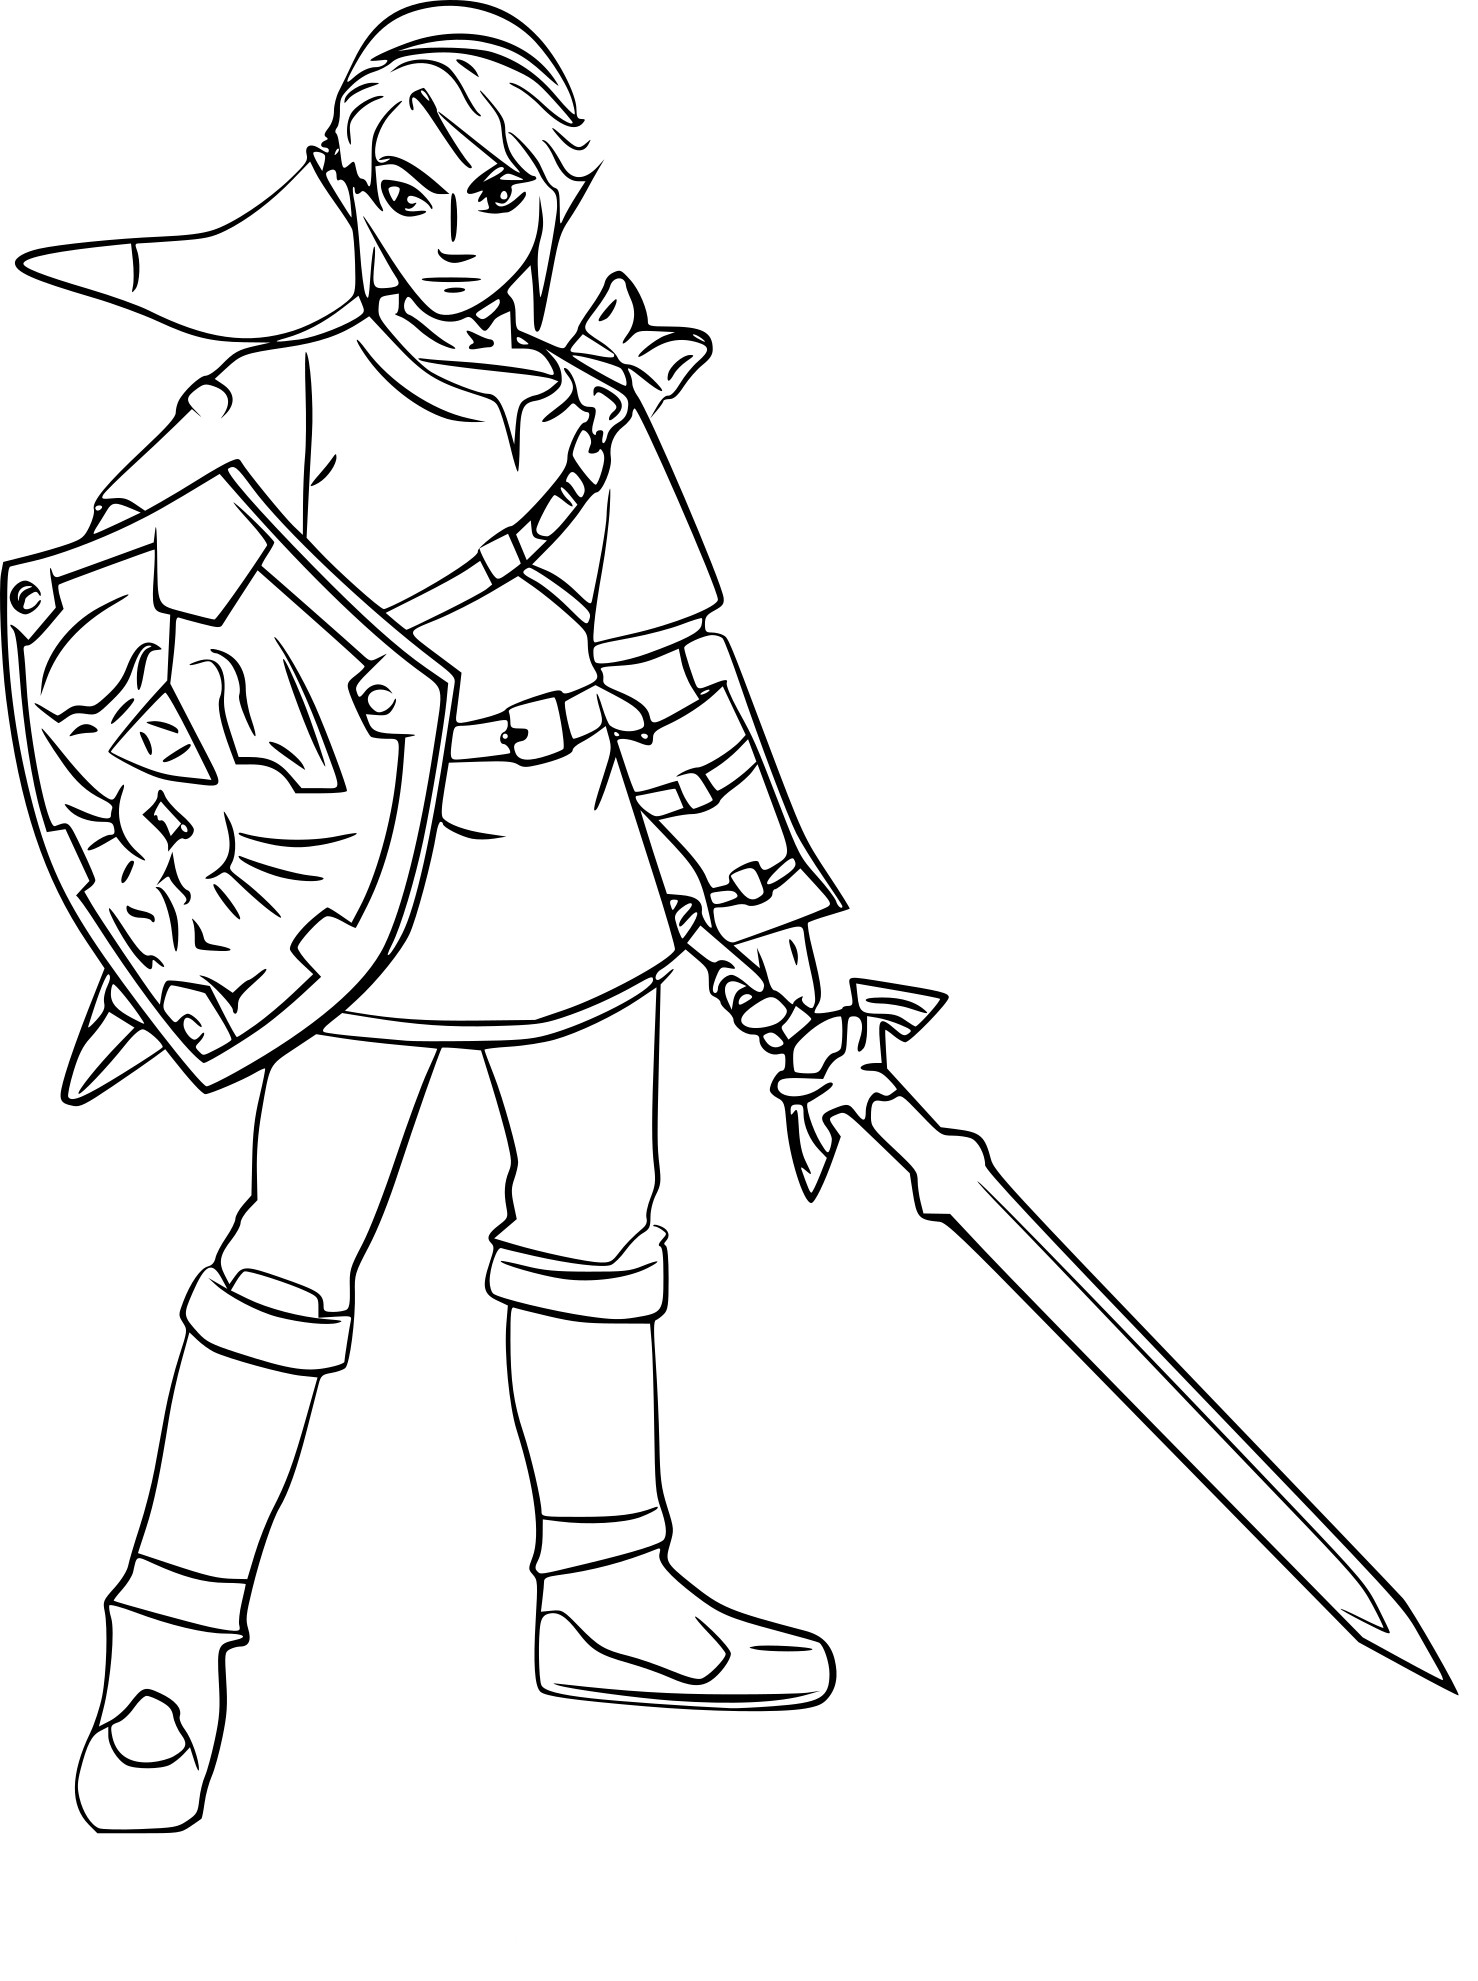 coloring with legend legend of zelda coloring pages link bird style free with legend coloring